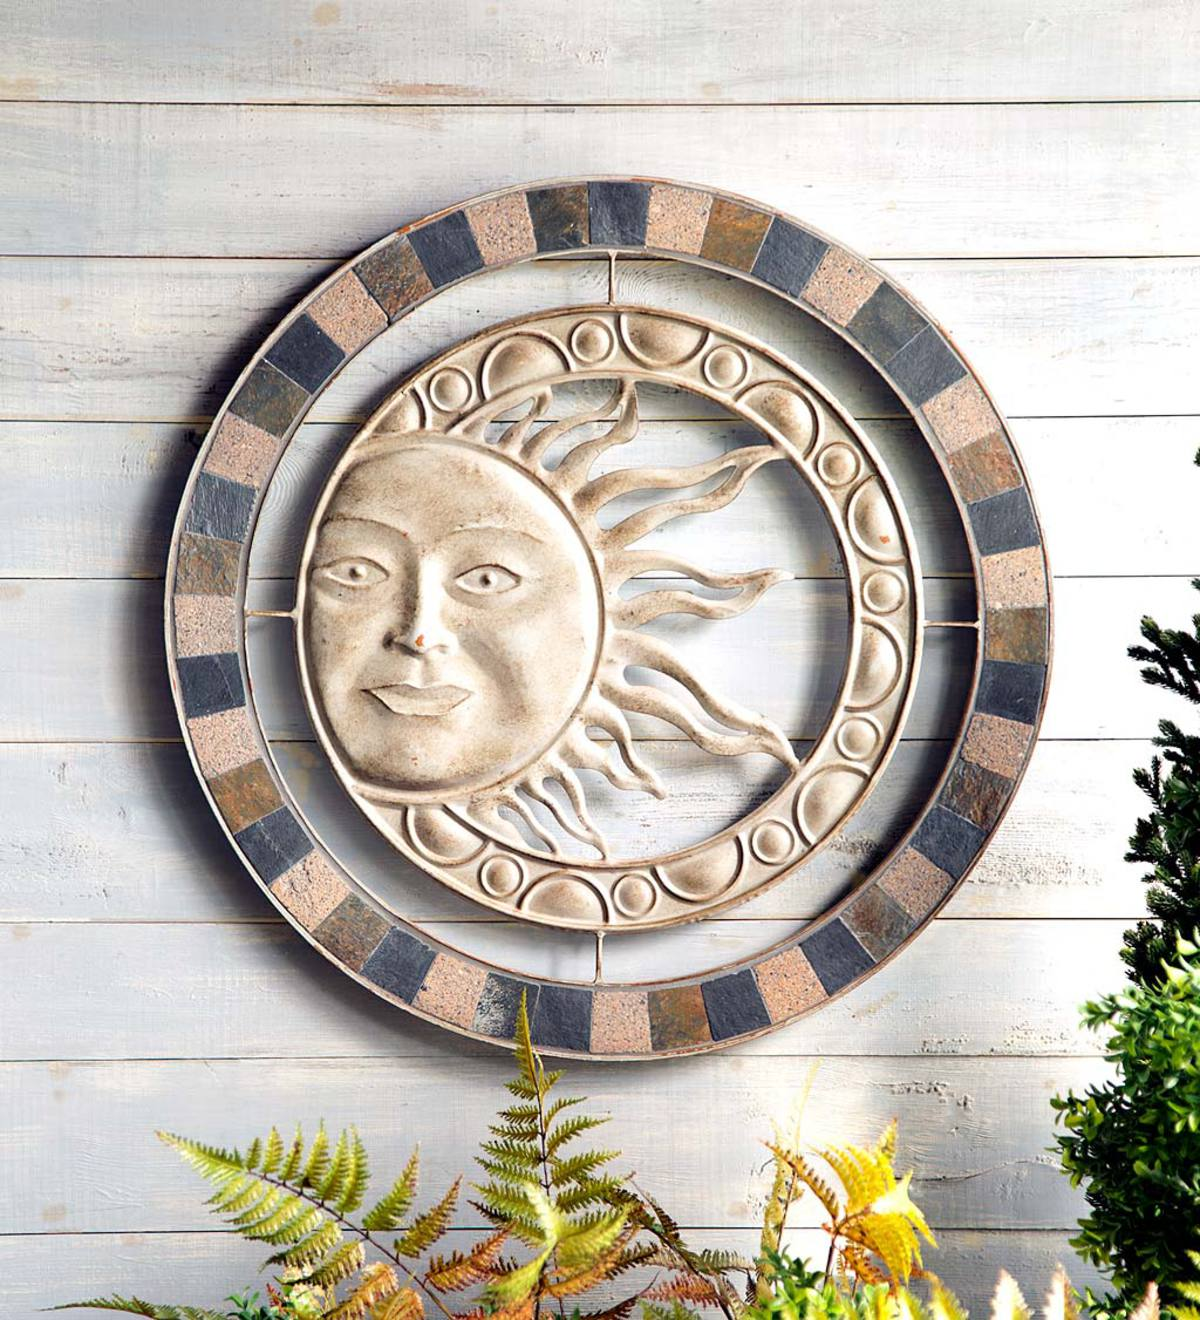 Metal and Stone Sun Wall Art  sc 1 st  Wind and Weather & Metal and Stone Sun Wall Art | Yard u0026 Garden Decor | Hidden and ...